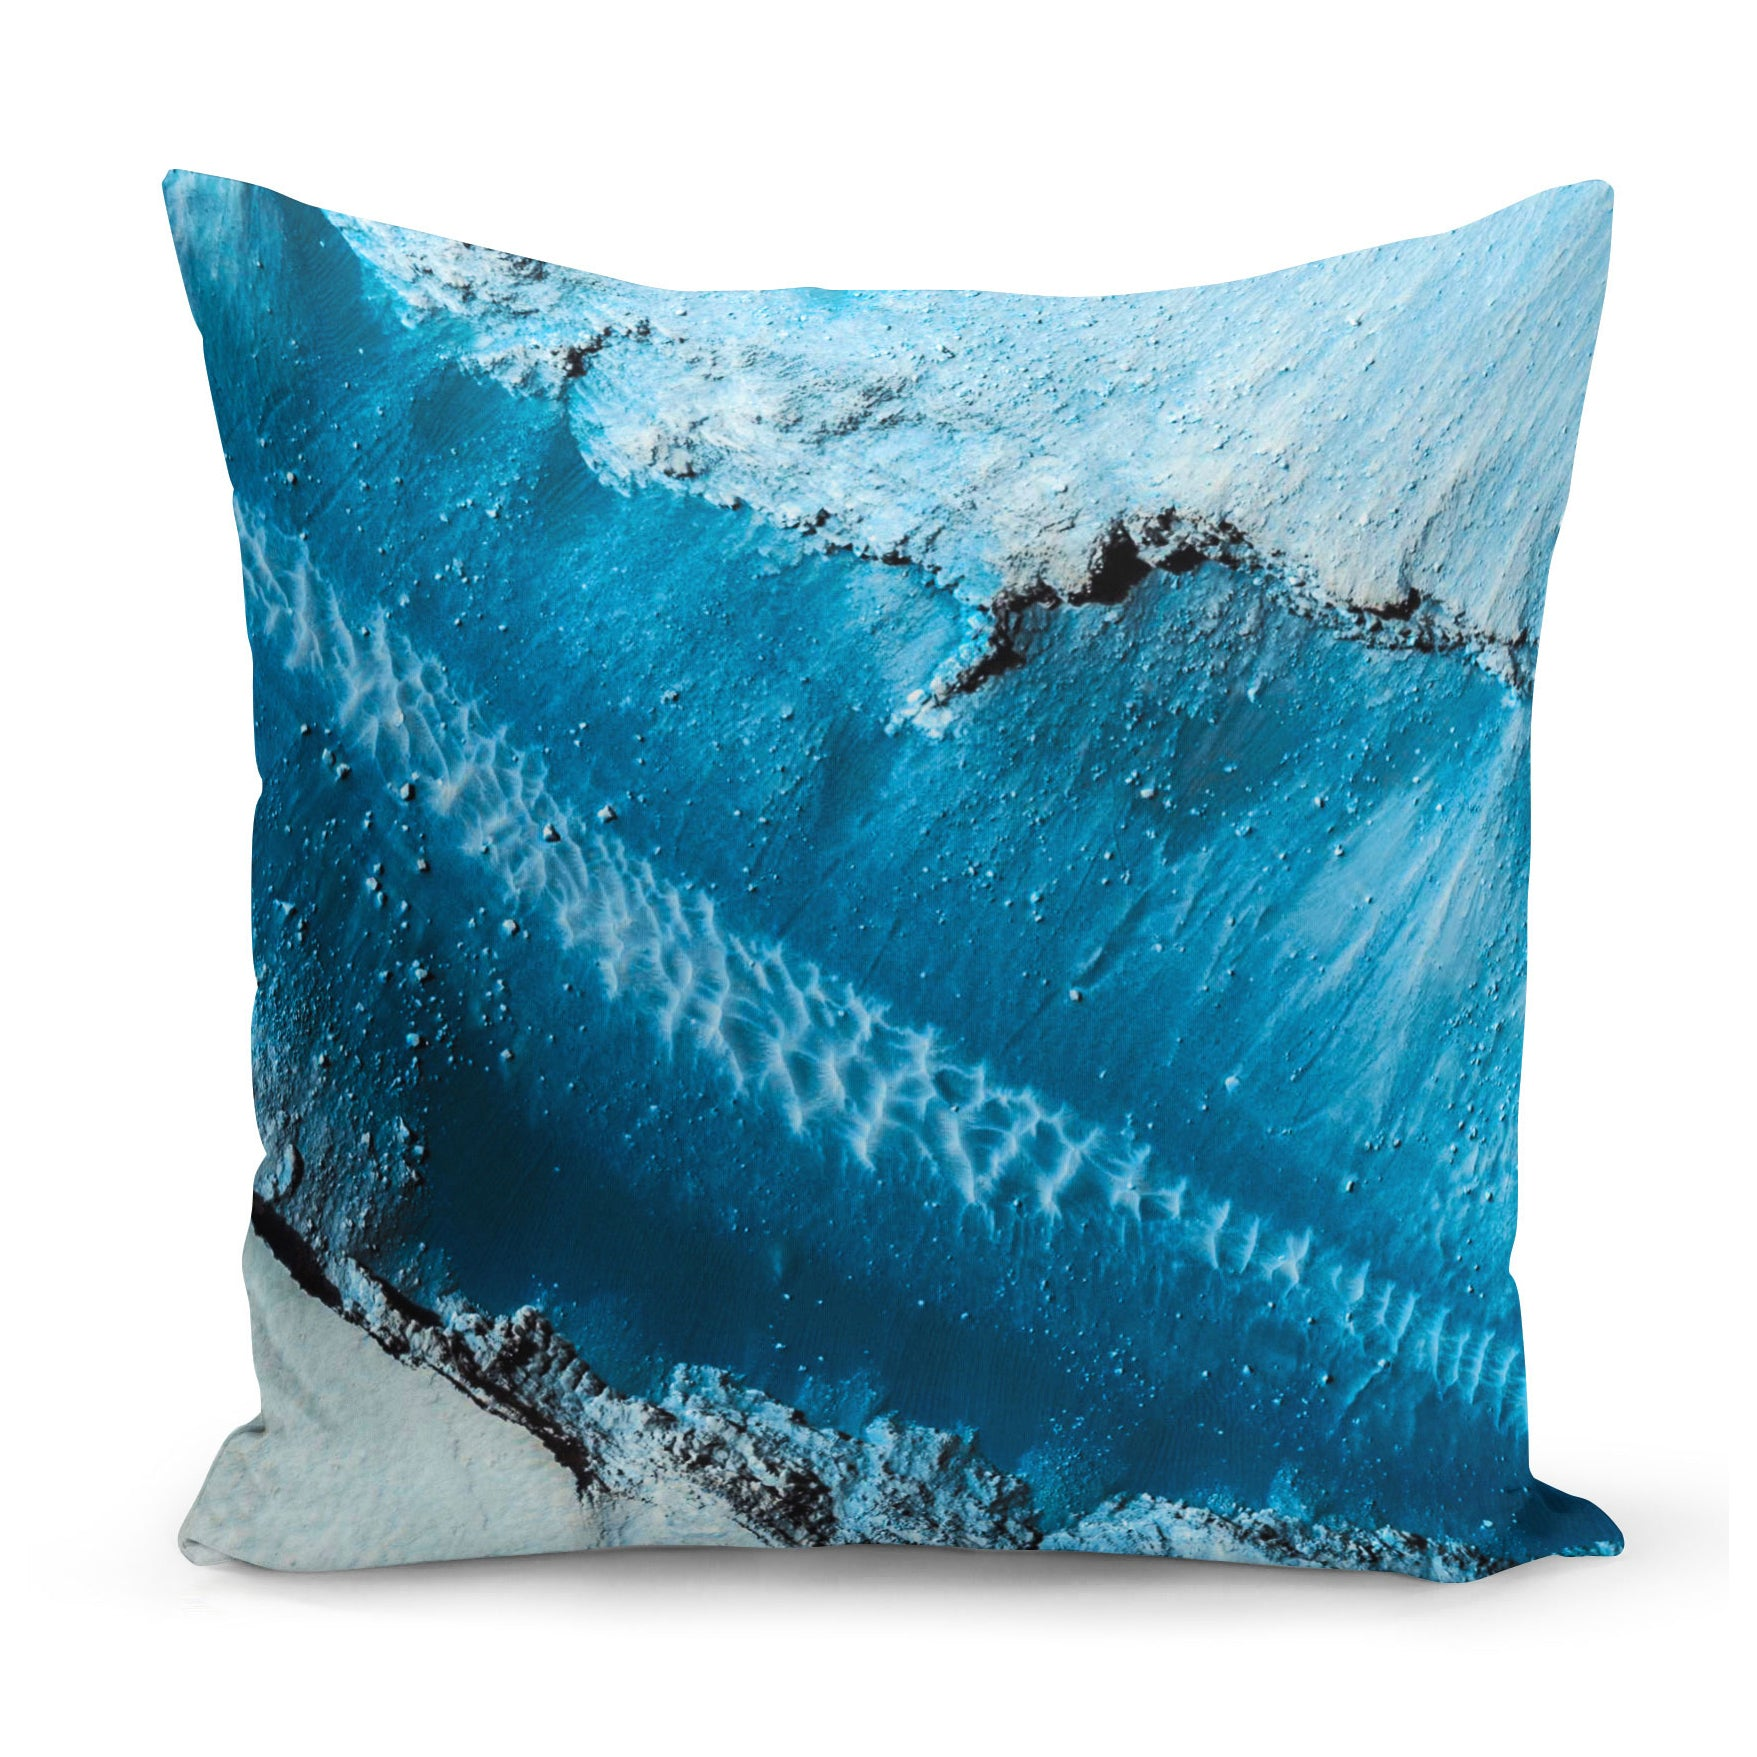 unique cushion showing the surface of Mars in blue